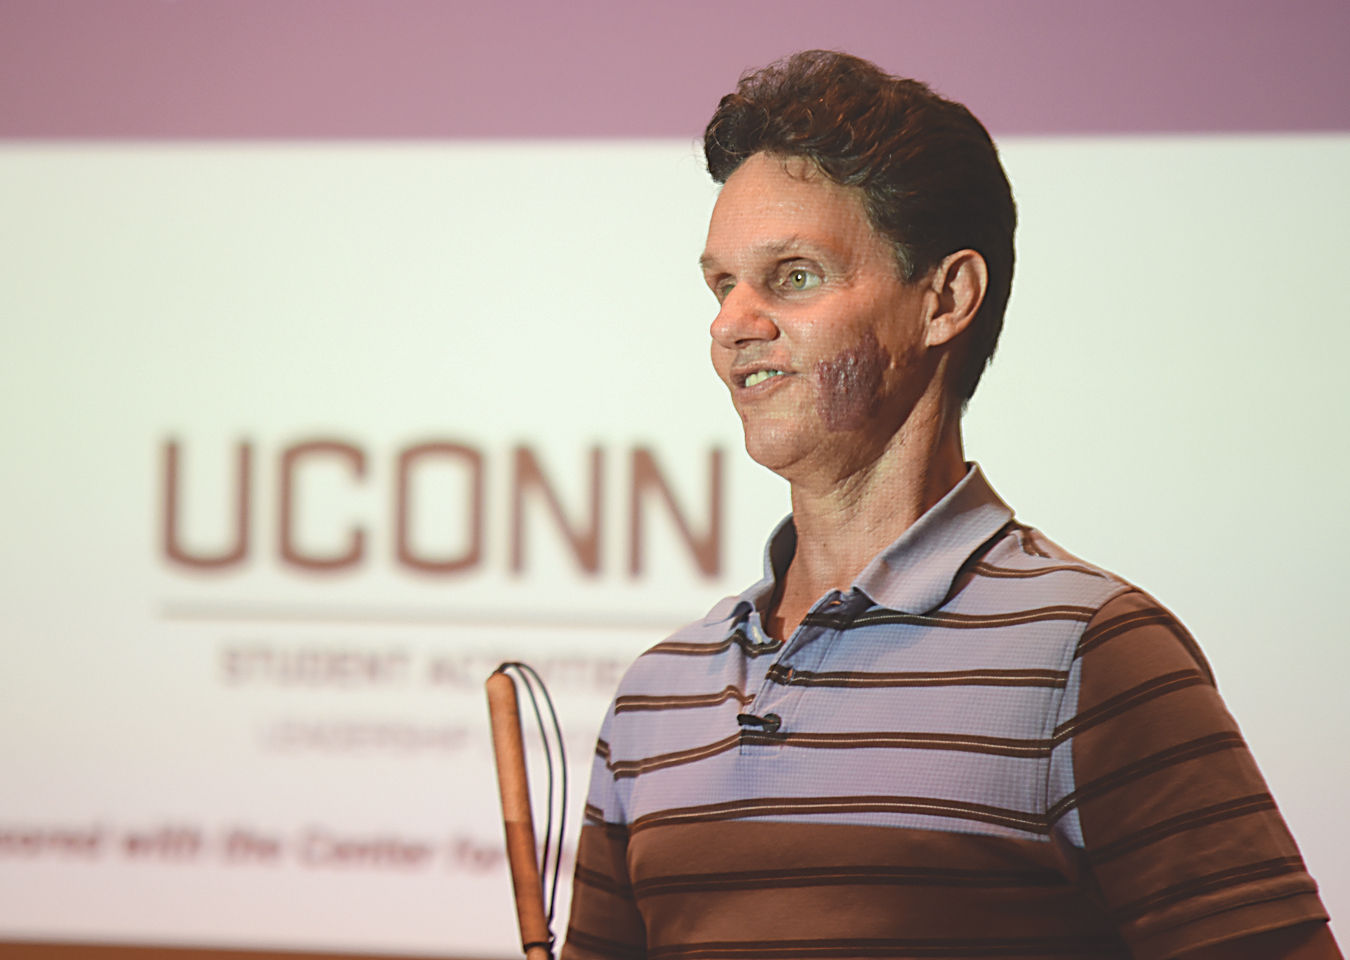 """Daniel Kish, president of World Access for the Blind speaks during """"Navigating the Unknown: Breaking Out of the Trap of Perceived Limitations"""" at Konover Auditorium in Storrs, Connecticut on Monday, Sept. 14, 2015. (Allen Lang/The Daily Campus)"""